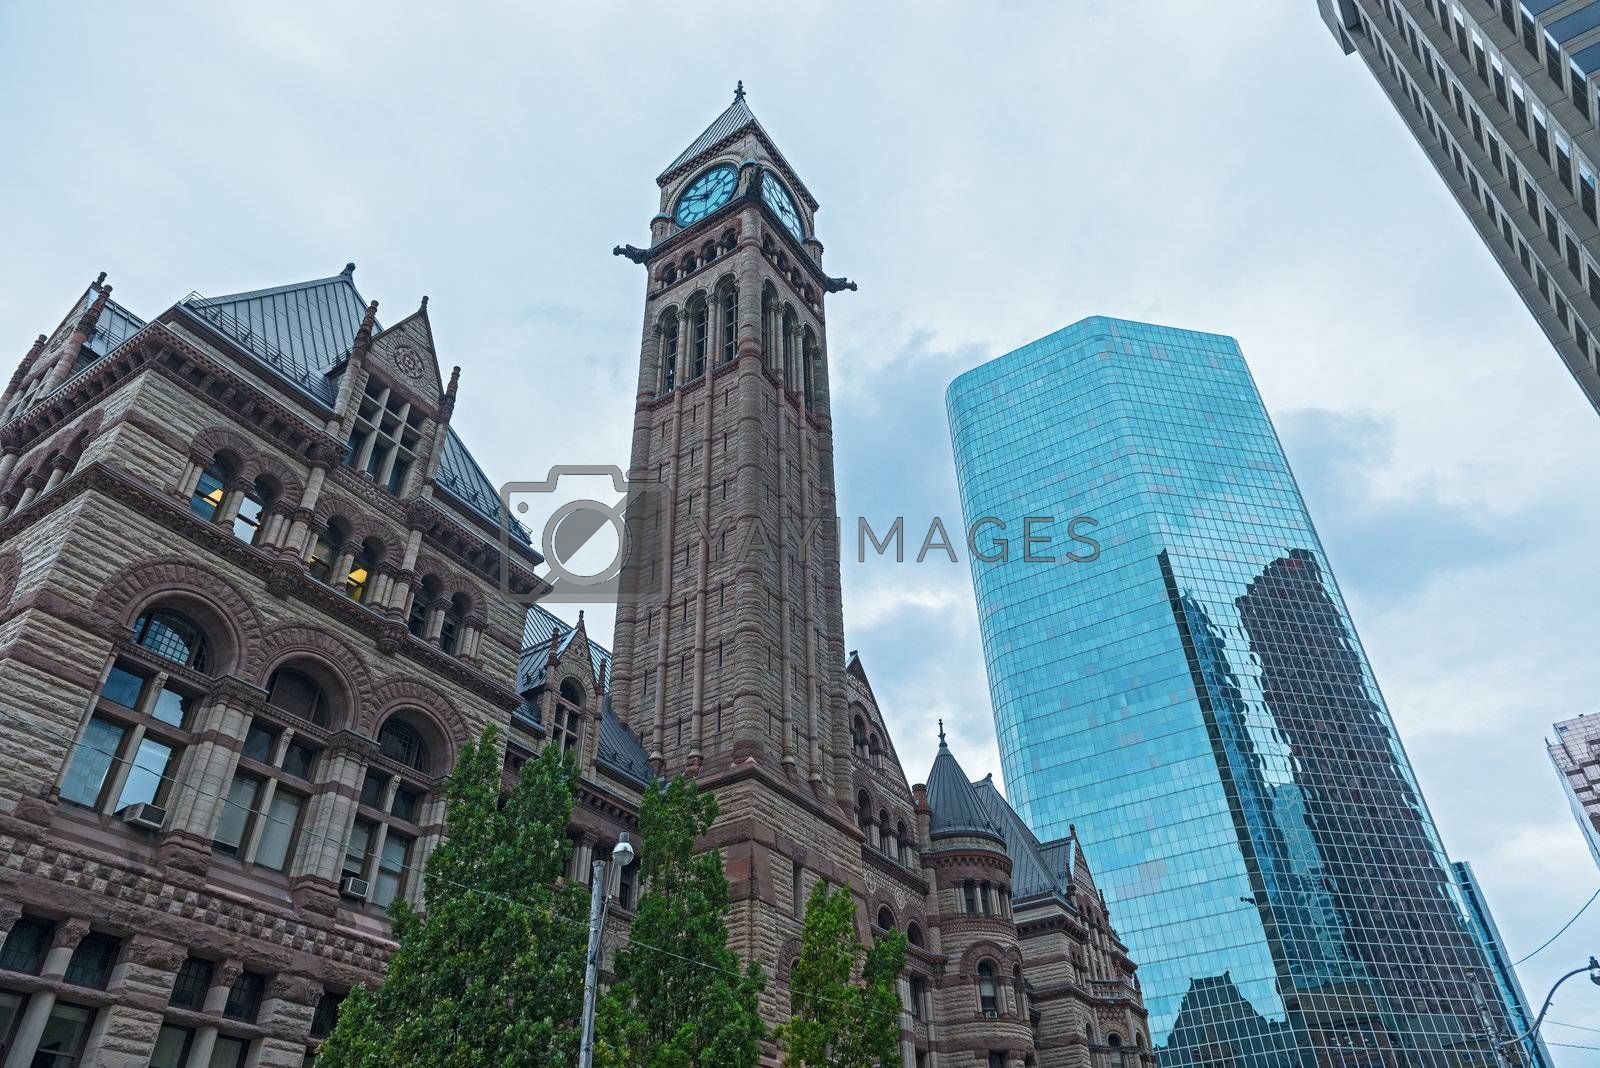 A view of the Old City Hall in Toronto with modern office buildings around it under blue skies.